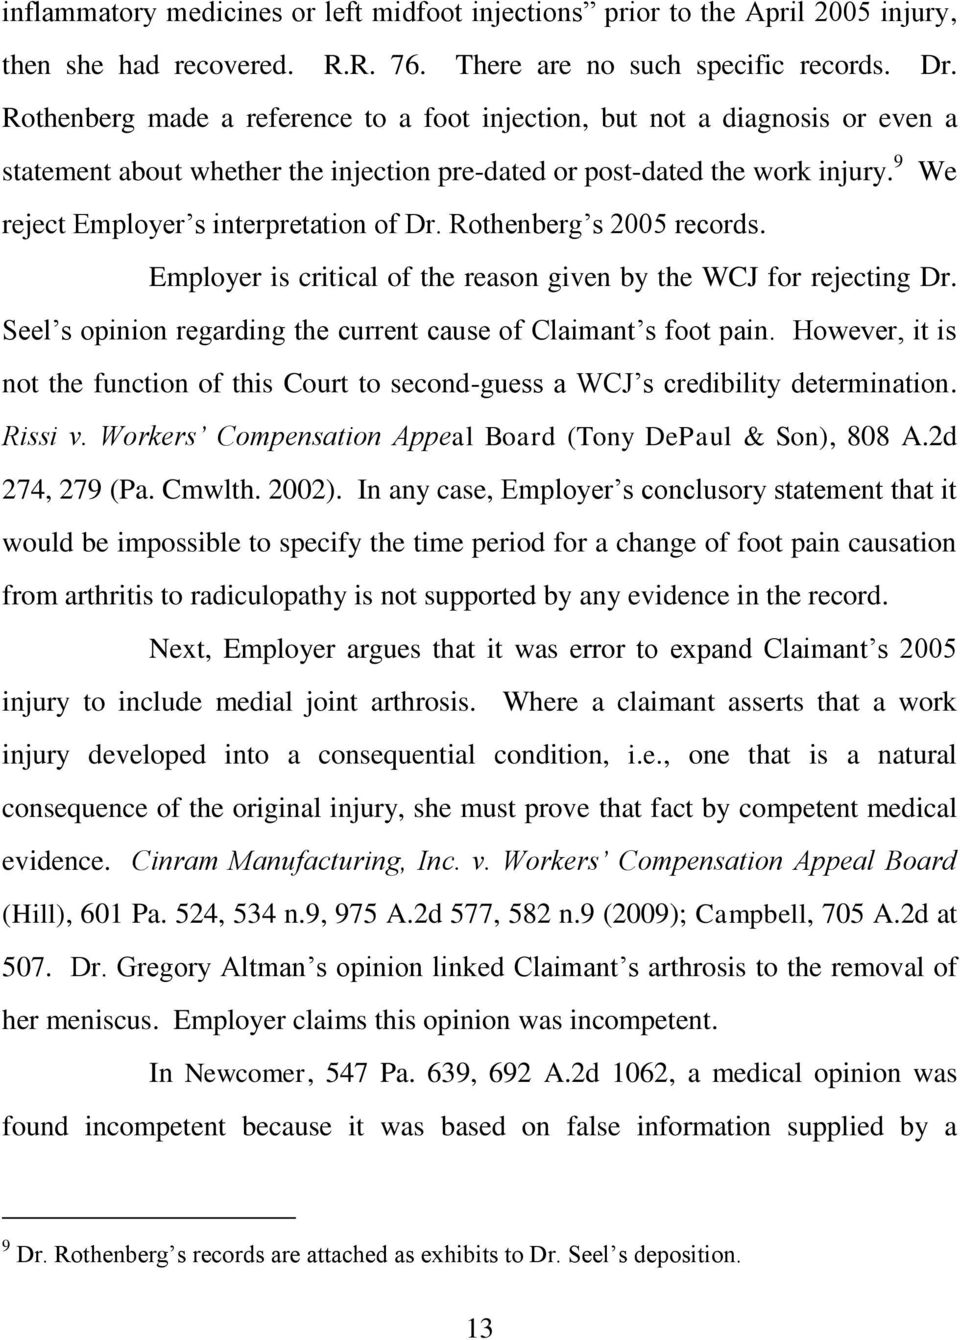 9 We reject Employer s interpretation of Dr. Rothenberg s 2005 records. Employer is critical of the reason given by the WCJ for rejecting Dr.